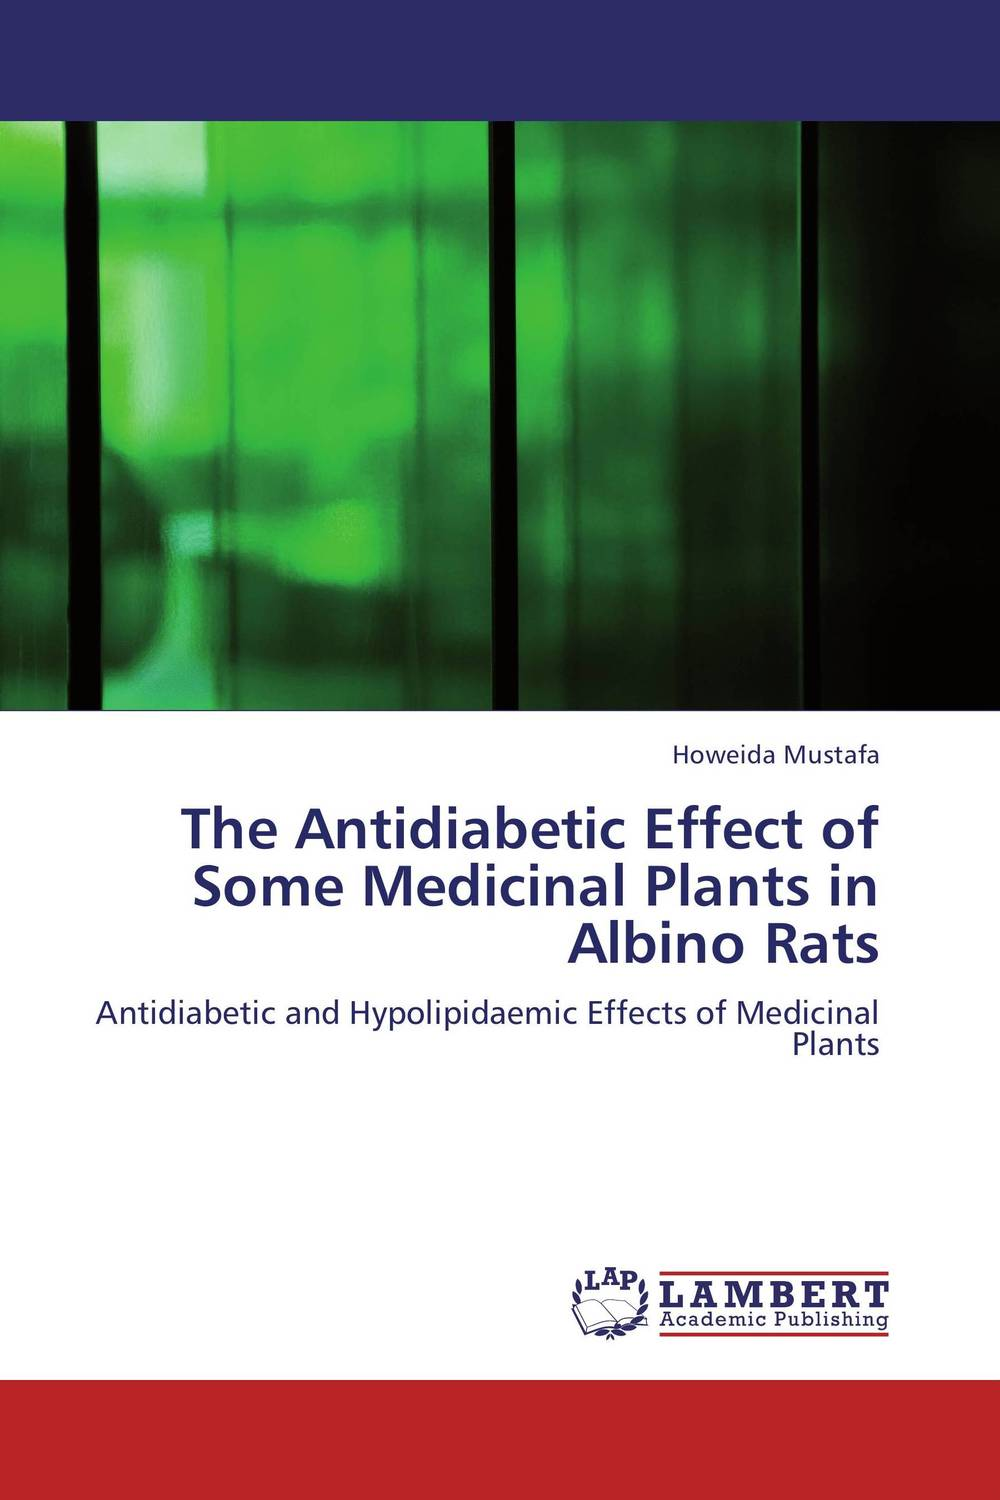 The Antidiabetic Effect of Some Medicinal Plants in Albino Rats george varghese diana john and solomon habtemariam medicinal plants for kidney stone a monograph